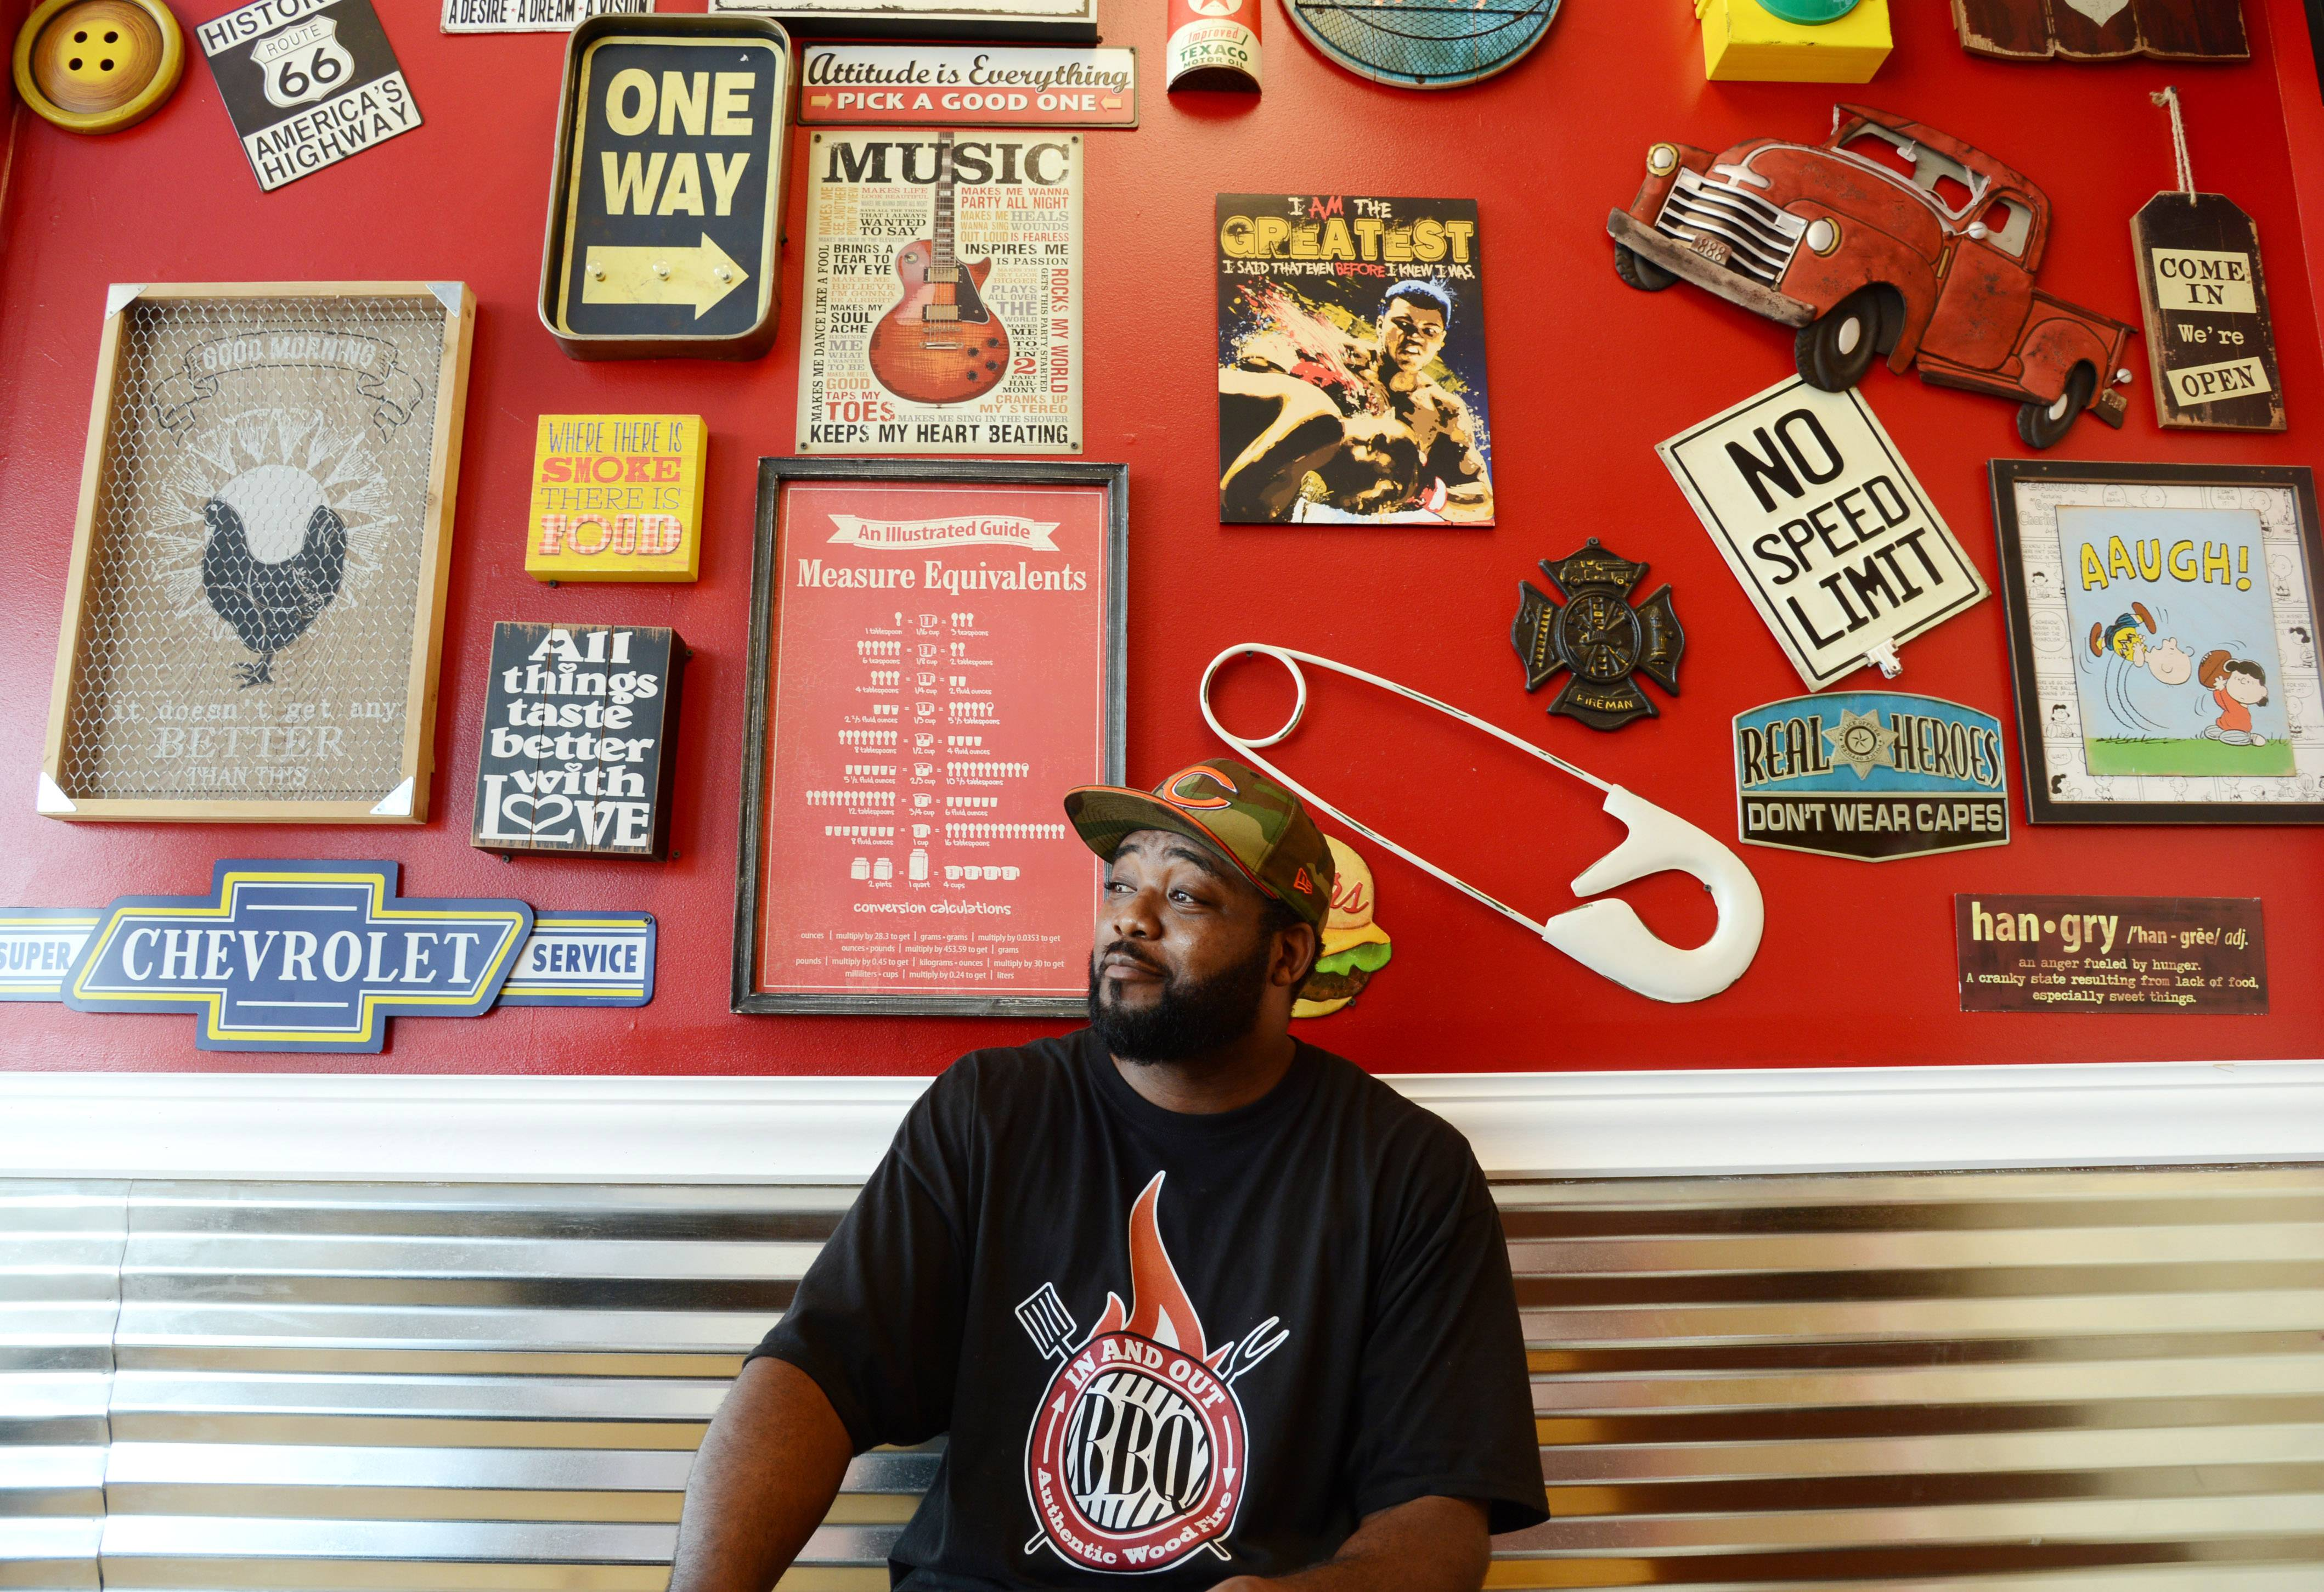 Quinton Beal at his In and Out BBQ restaurant, at Hawley and Lake streets in Mundelein. He and village officials hope the eatery helps lead a resurgence of the struggling Hawley Lake Plaza. The restaurant opened earlier this month but hopes to celebrate a grand opening in August.